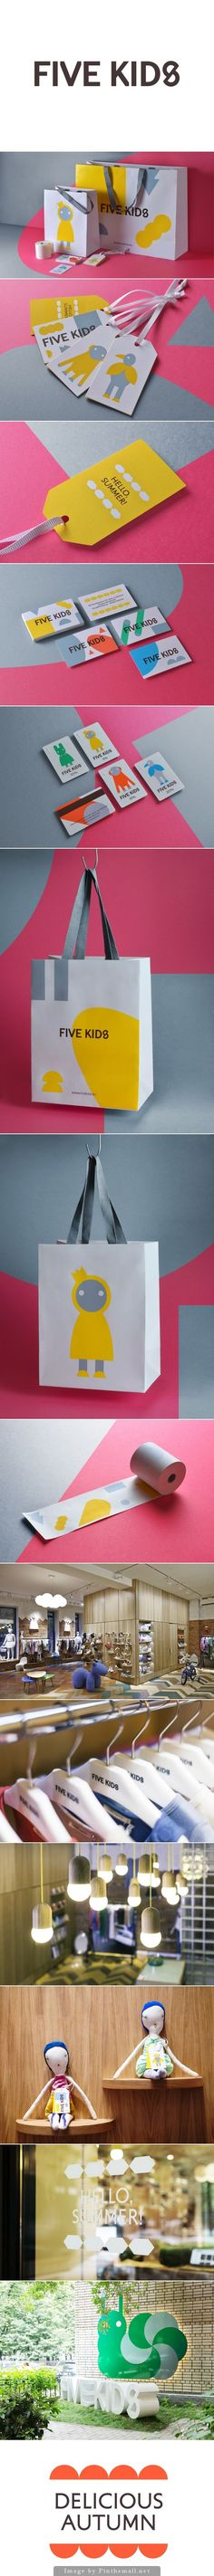 Five Kids on Behance this looks like a fun place to shop #identity #packaging #branding PD